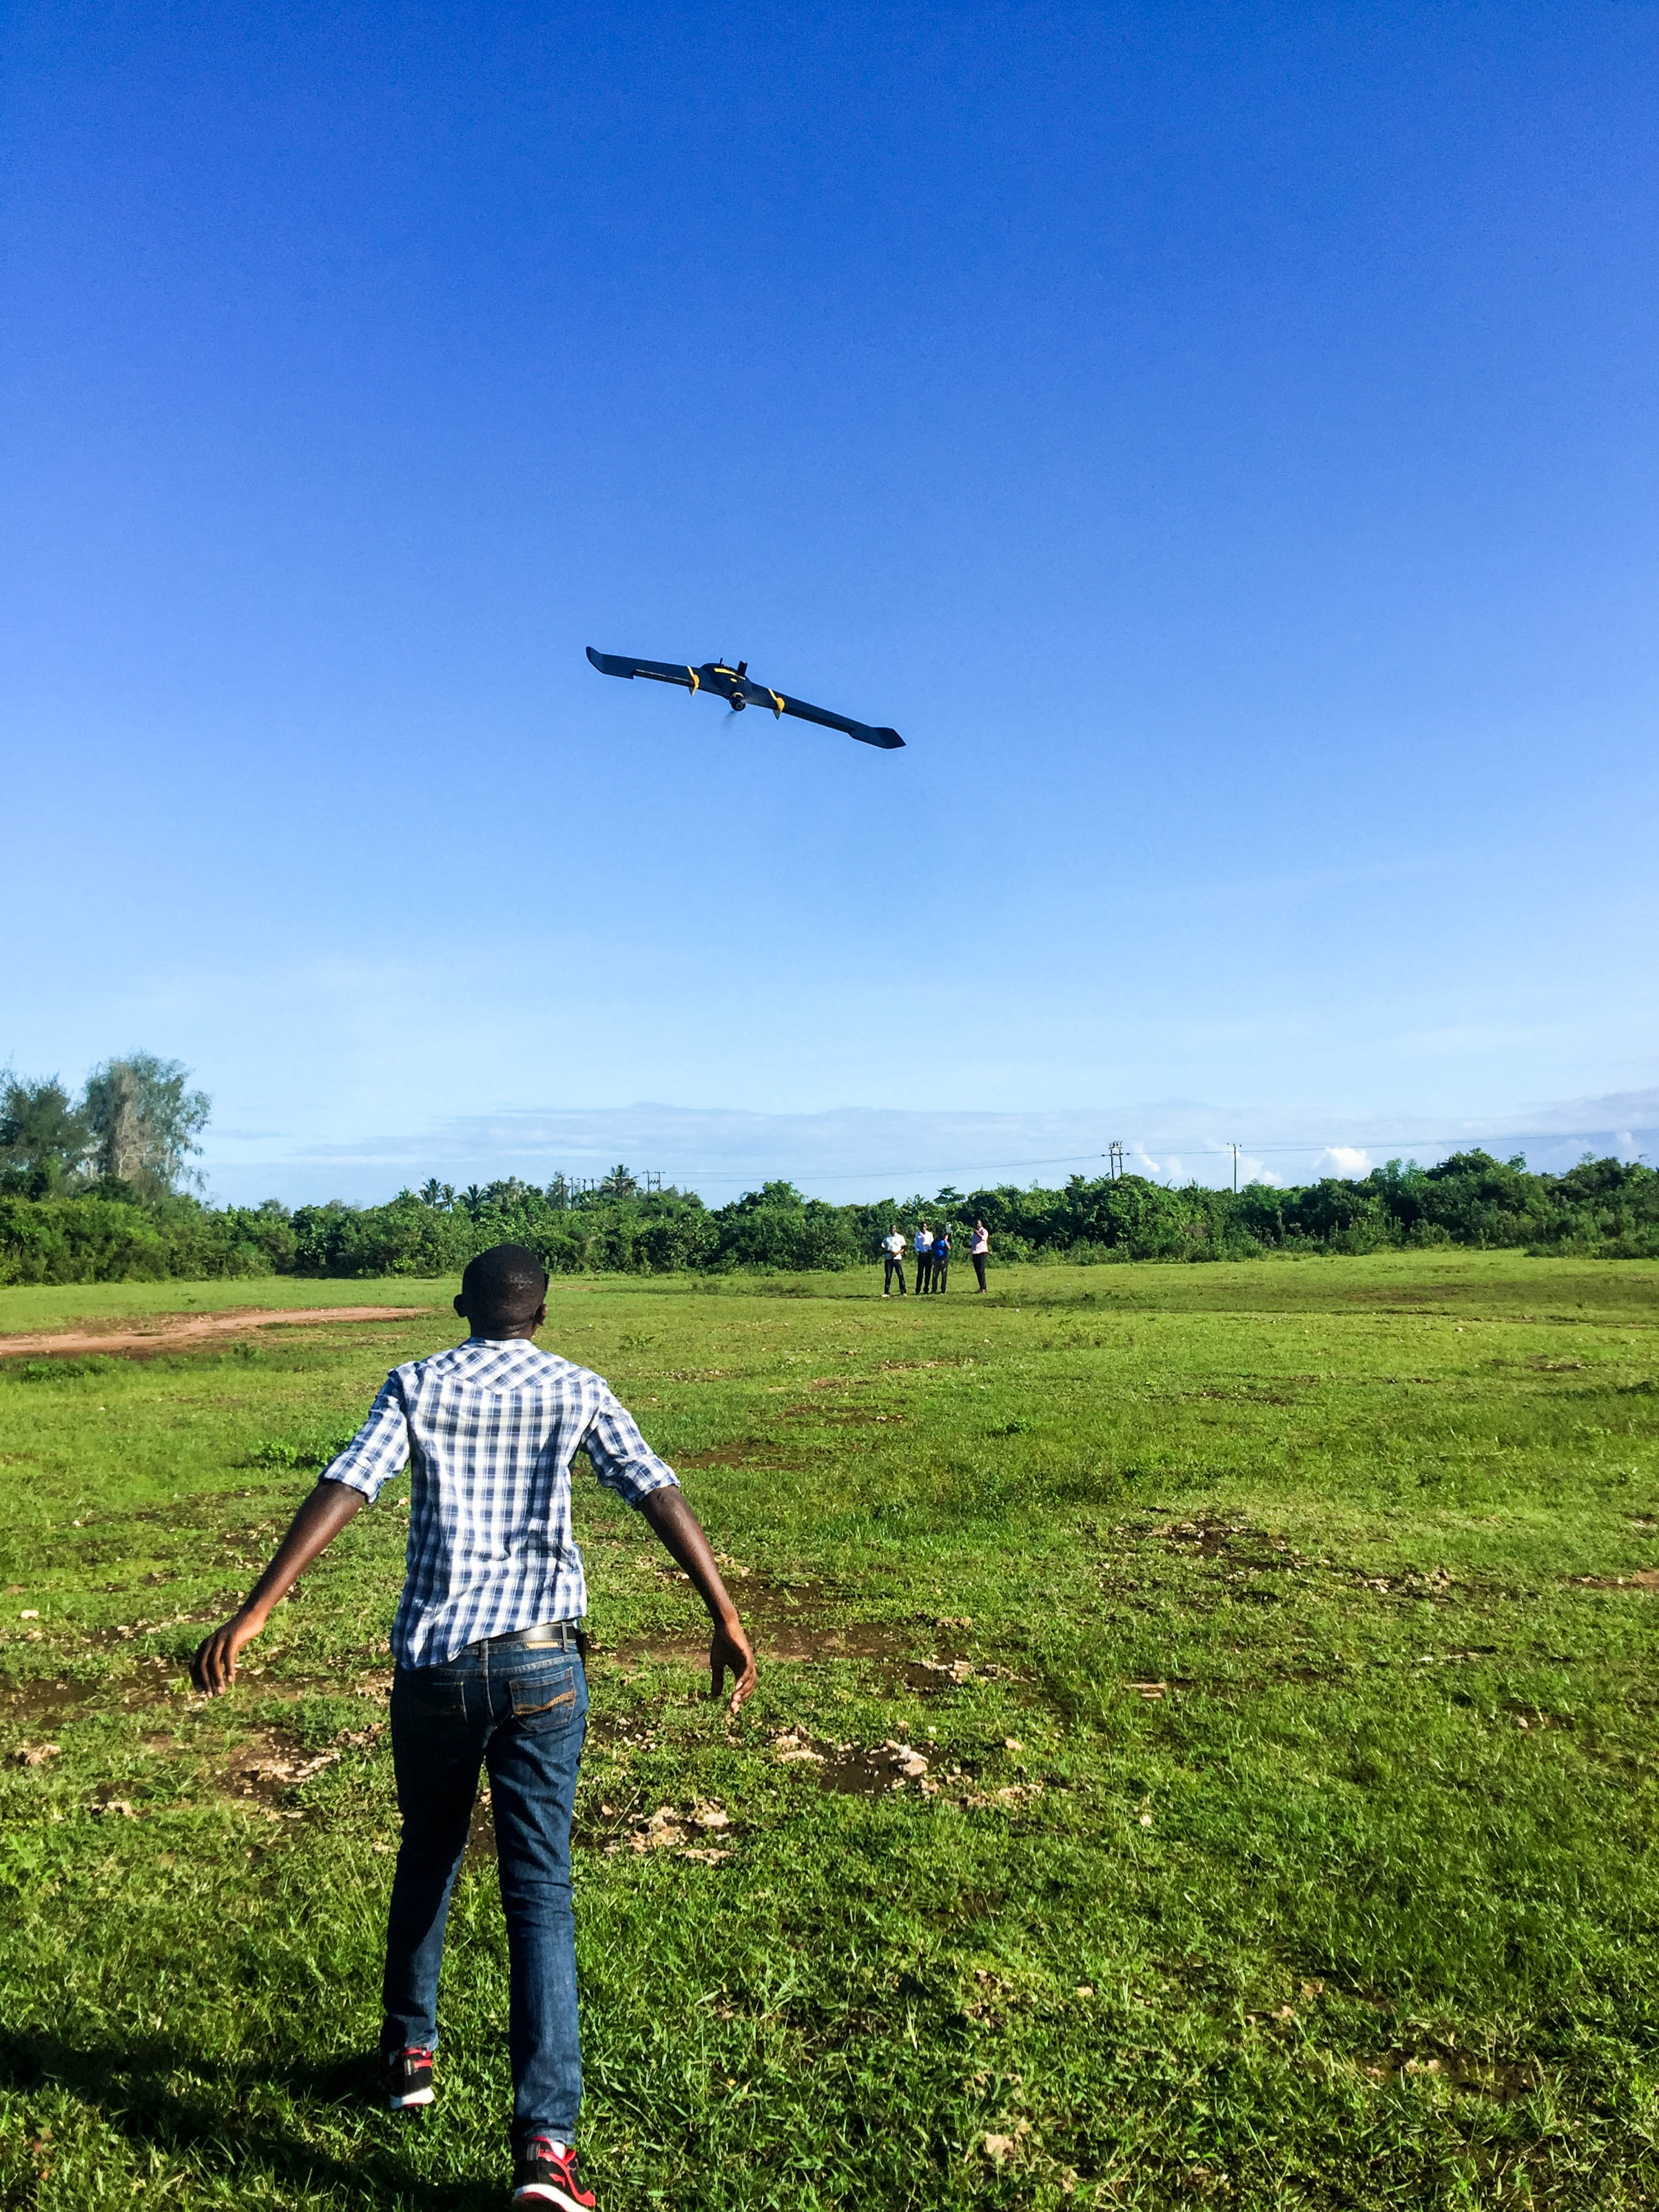 Chasing Wind Part 2: The Potential of Drones for Peacebuilding